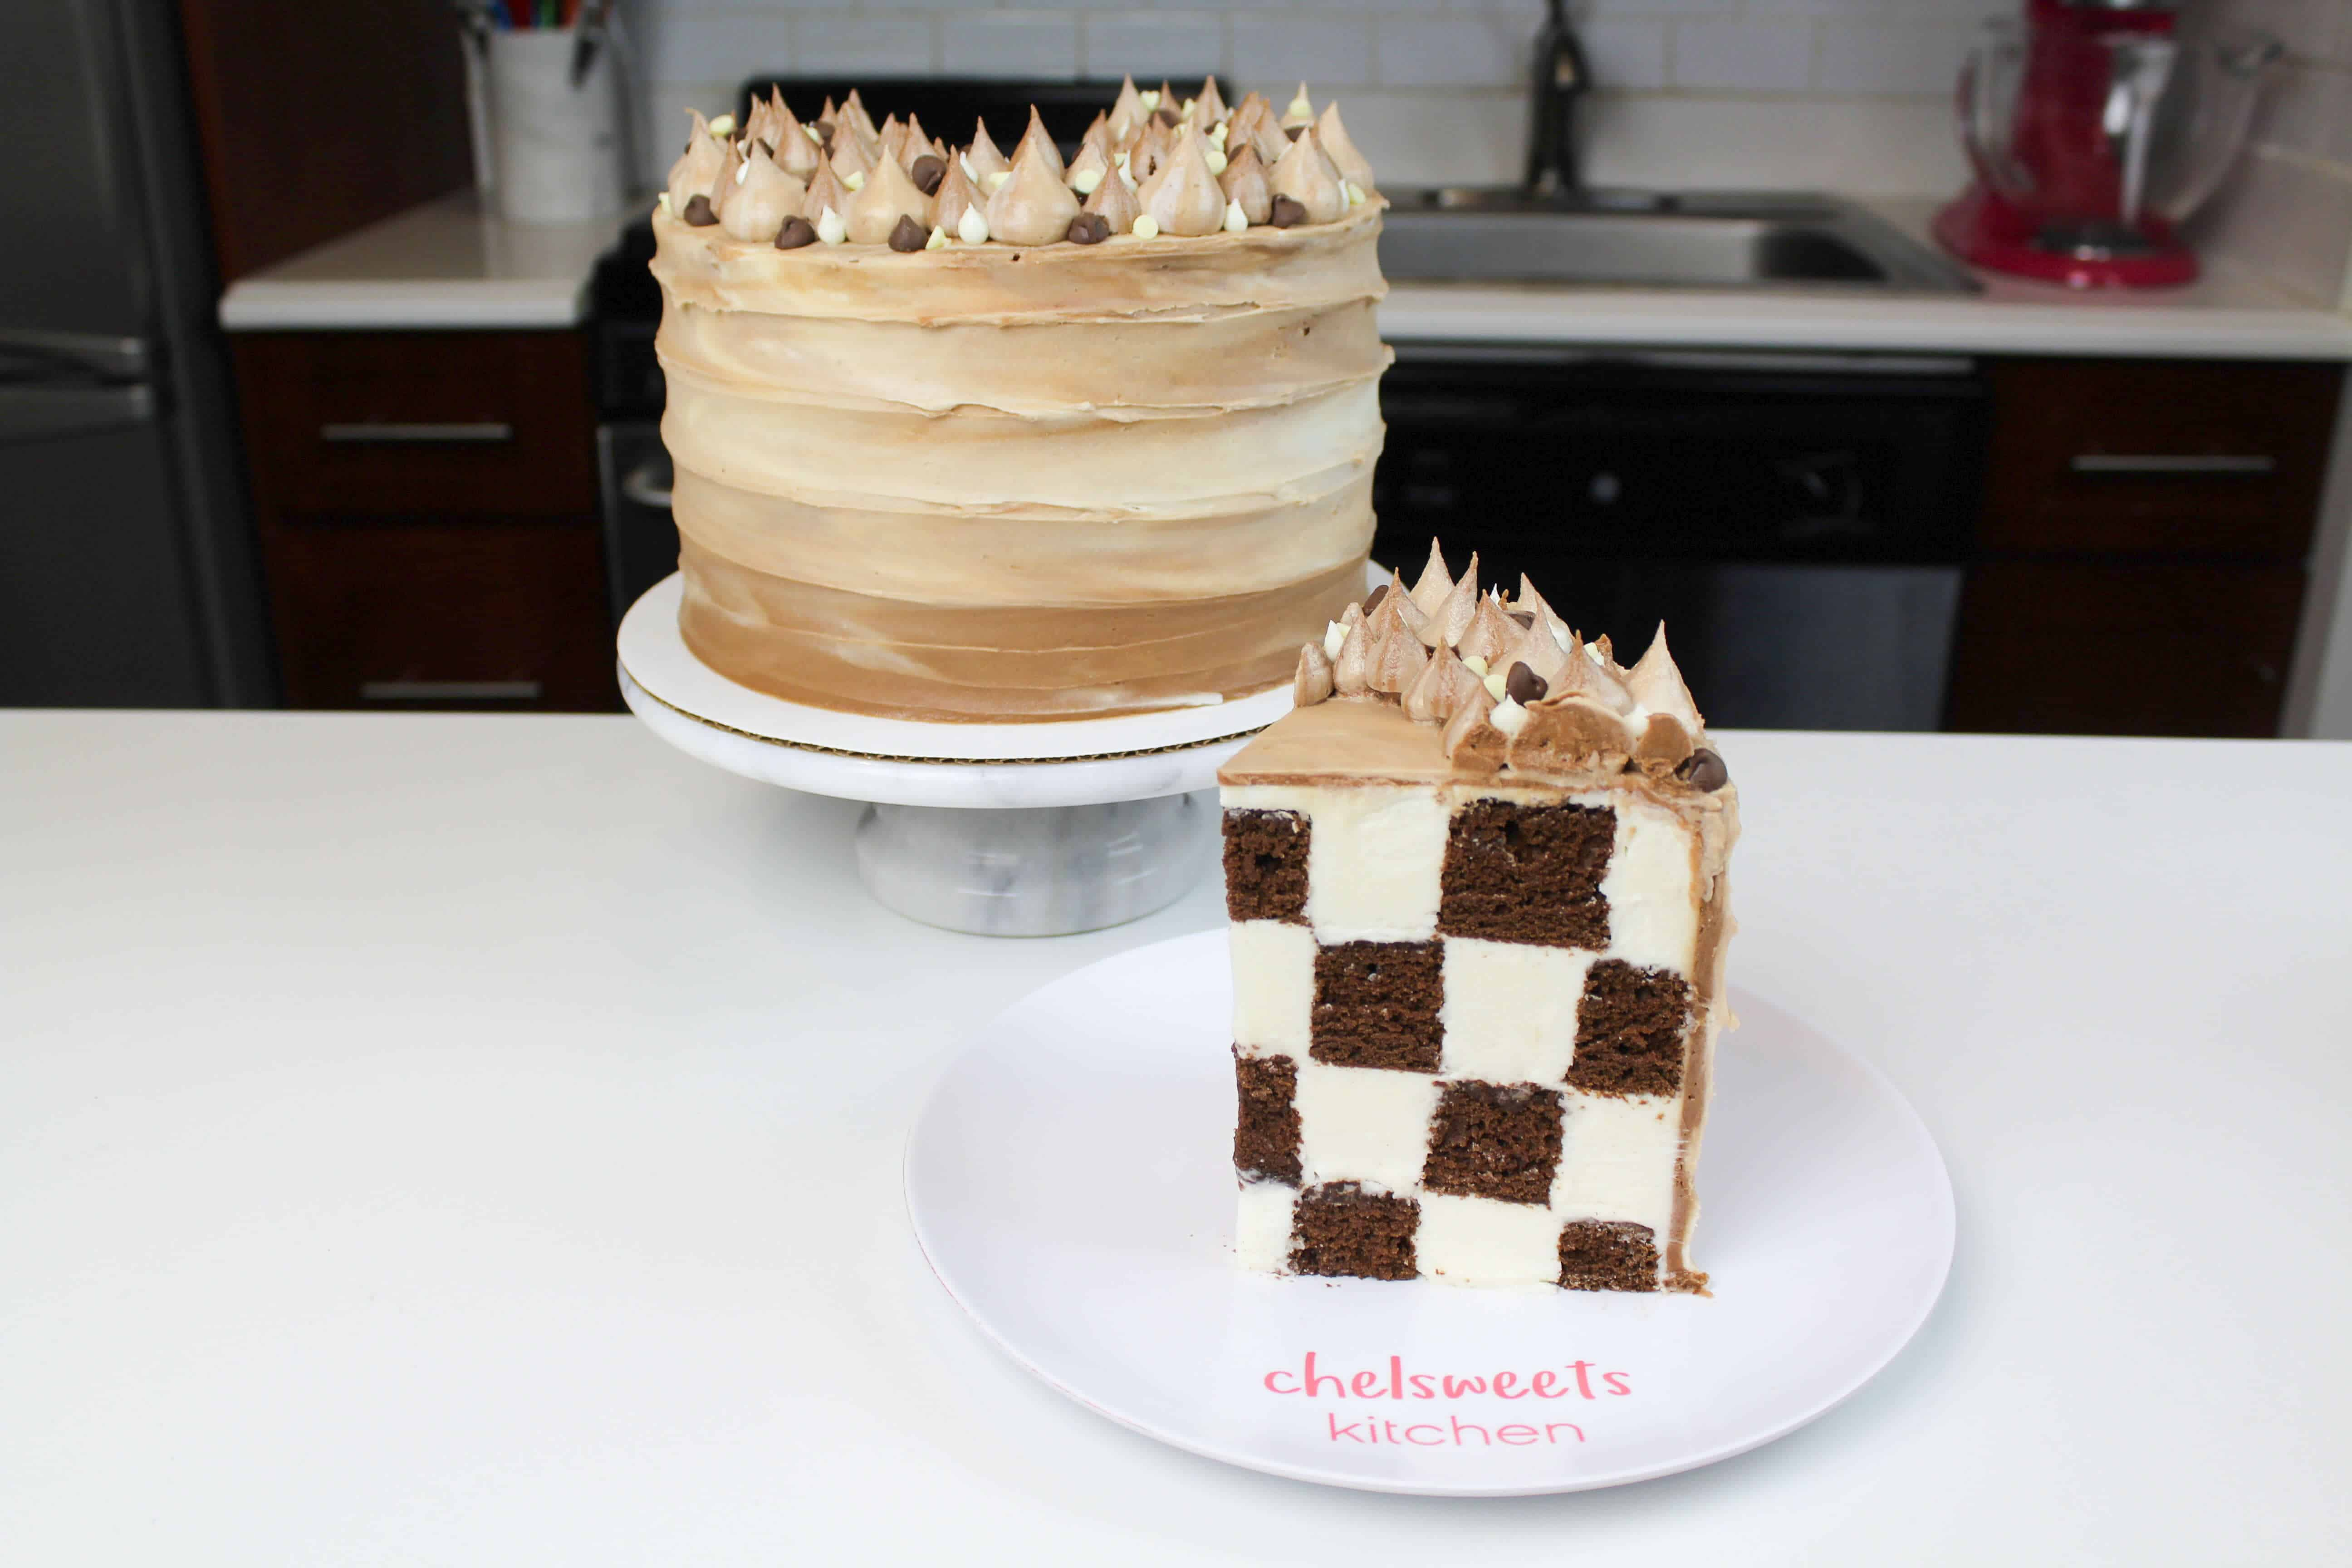 Frosting Checkerboard Cake Half Chocolate Cake Half Frosting